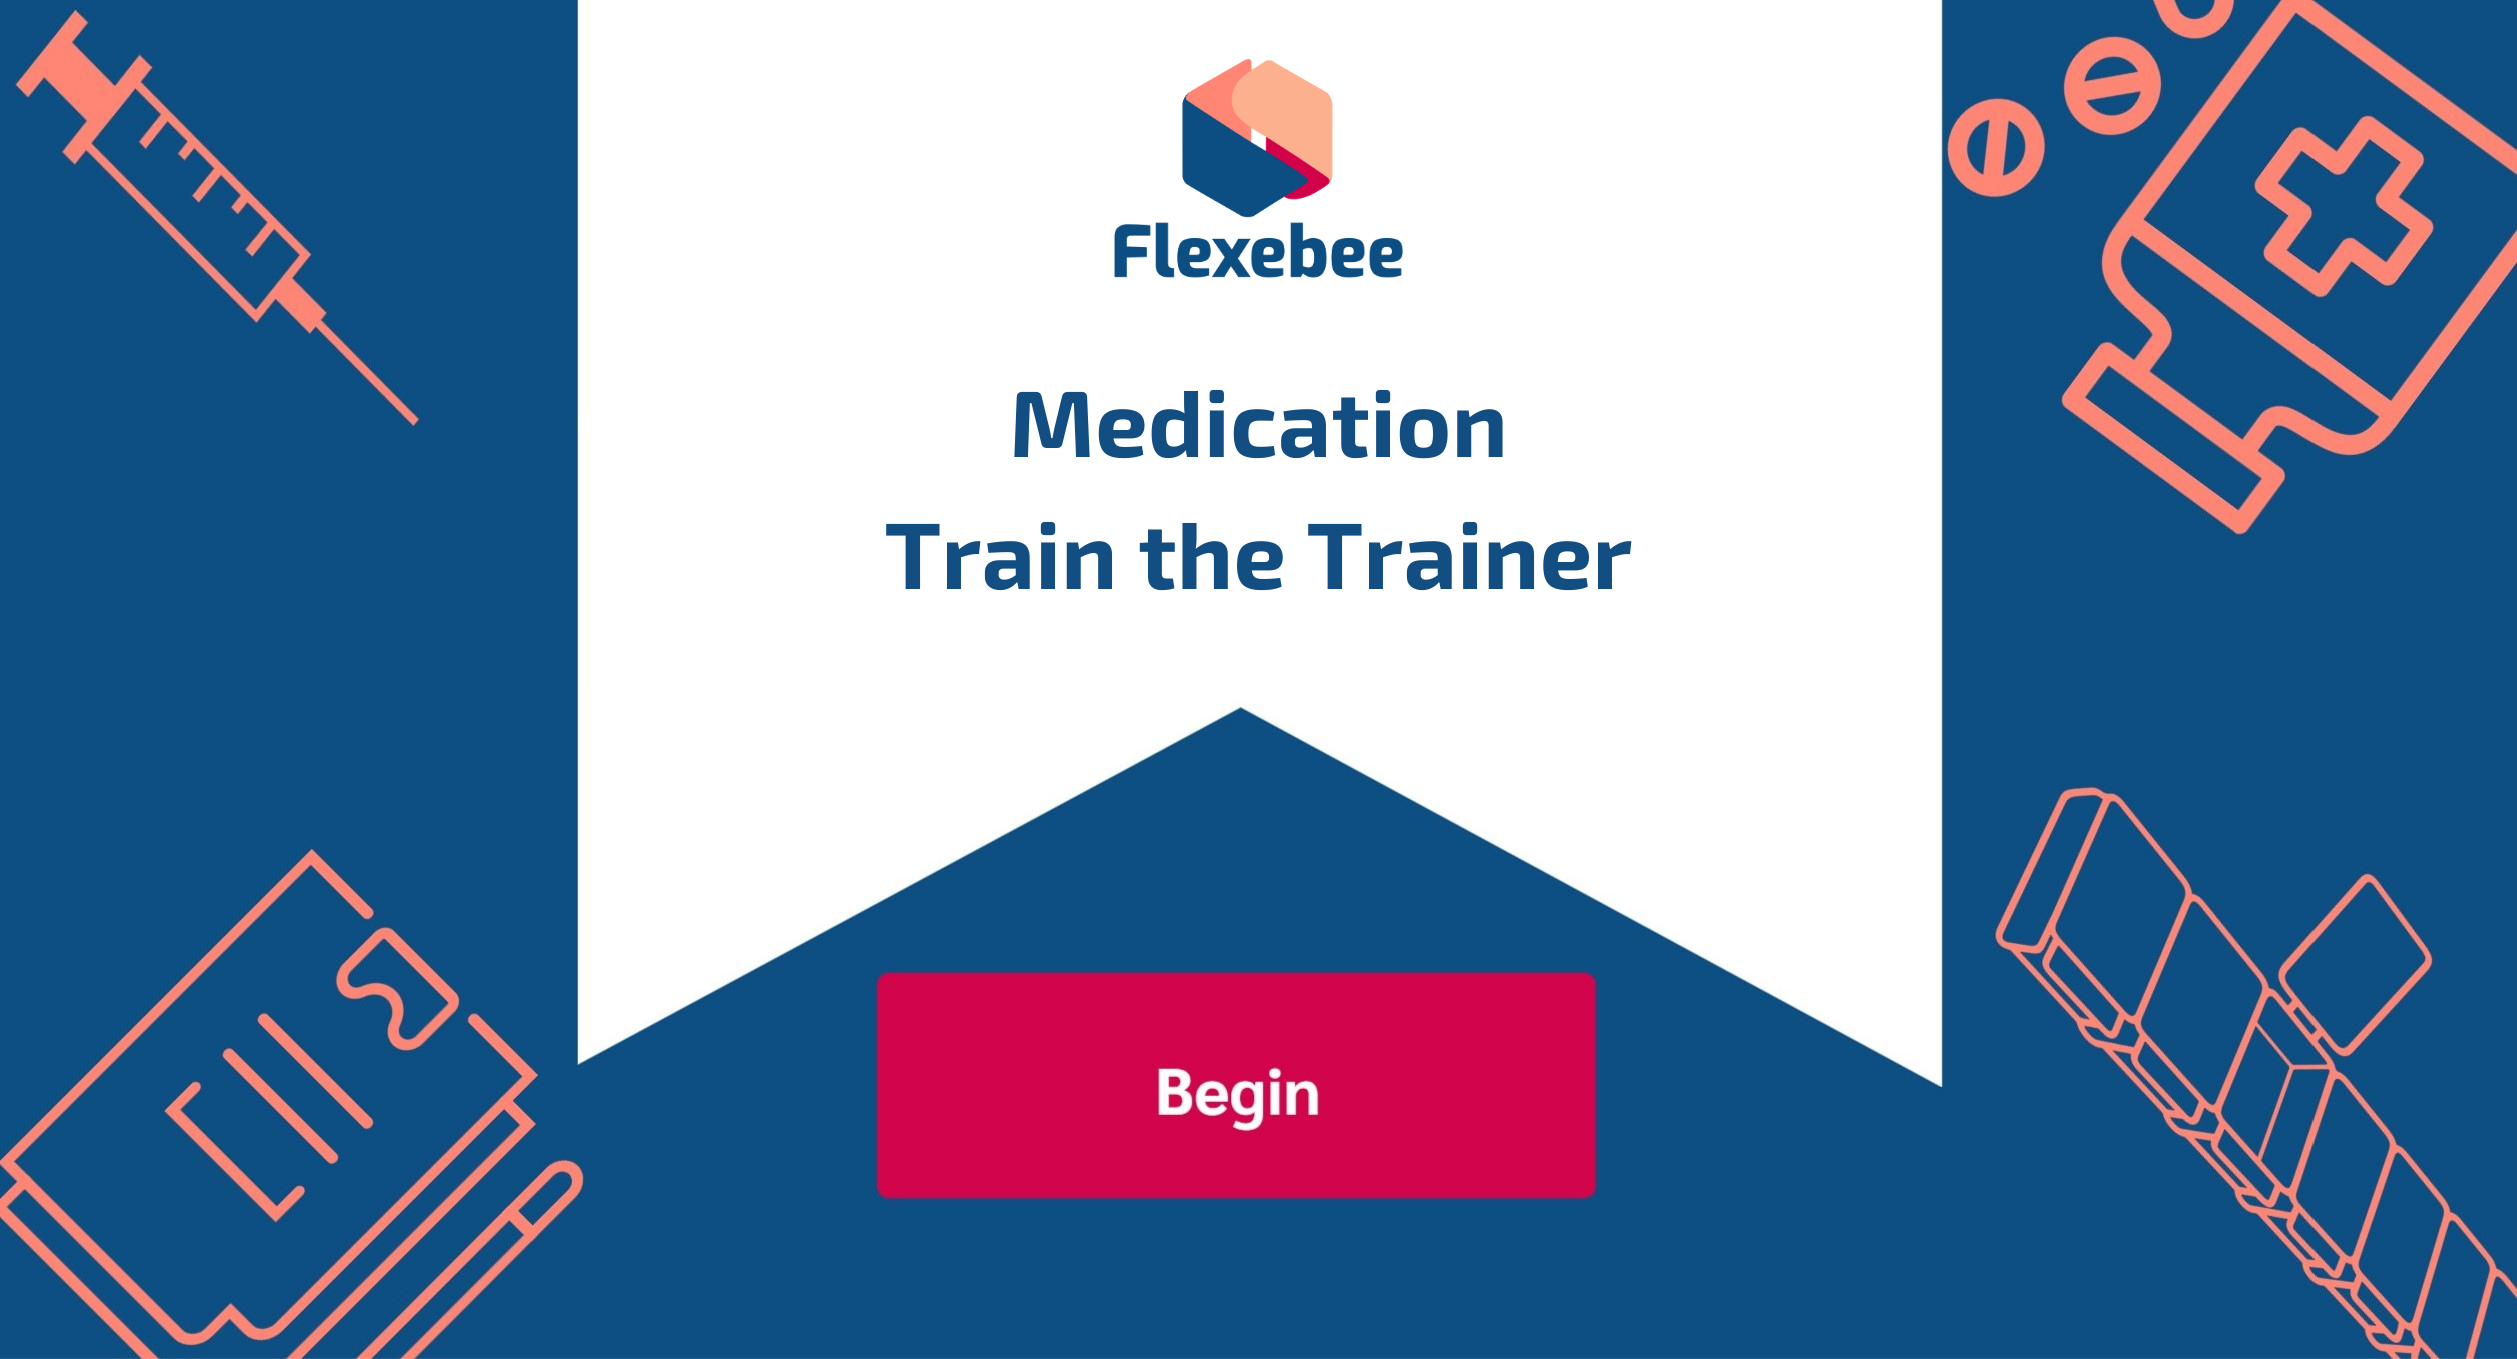 Medication Train the Trainer